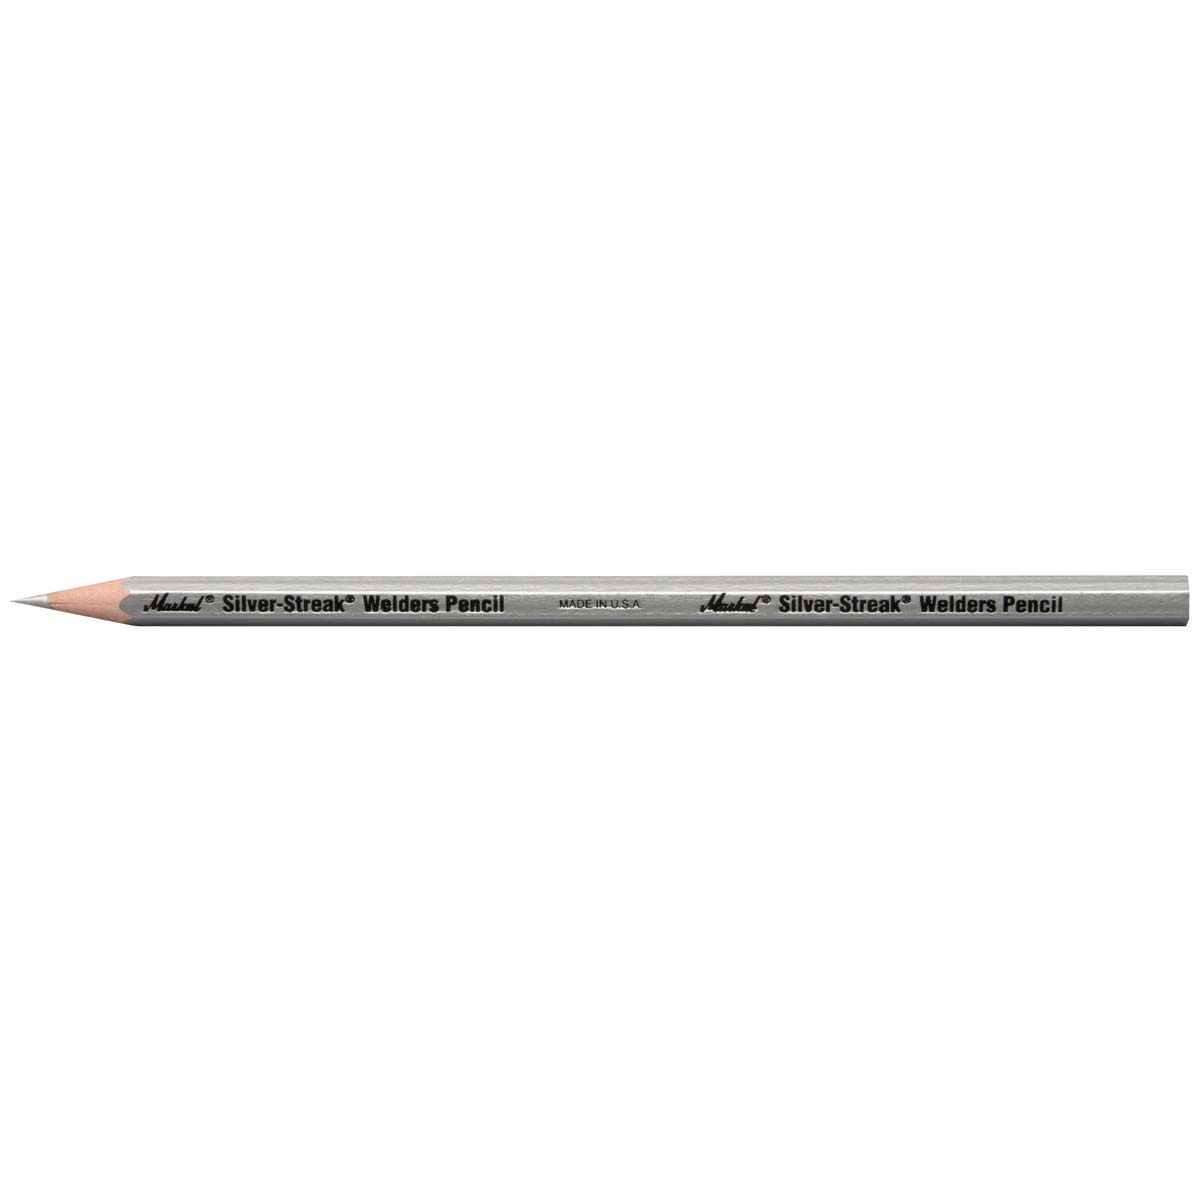 Silver-Streak® Welders Pencil